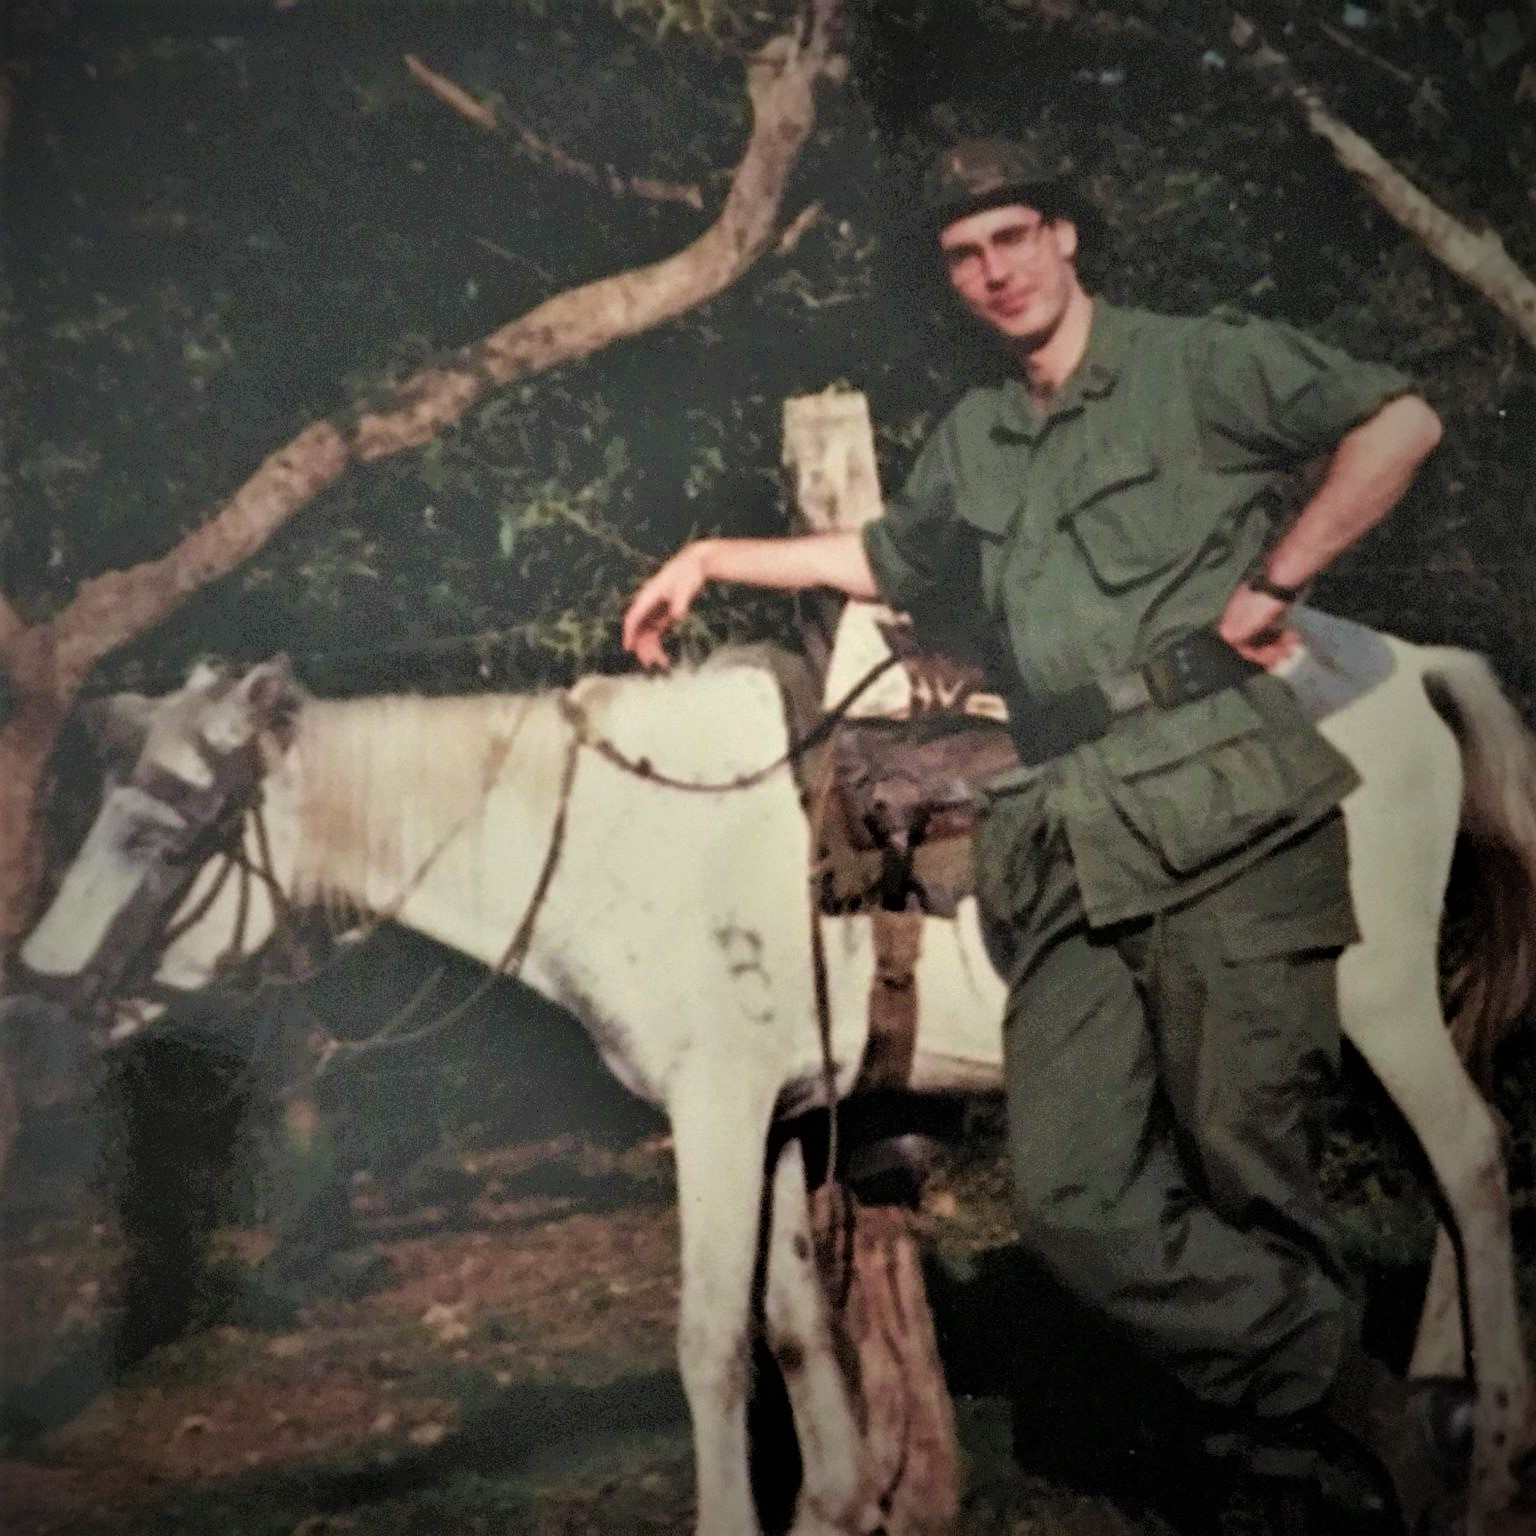 Fran O'Connell older picture in the jungle with a horse